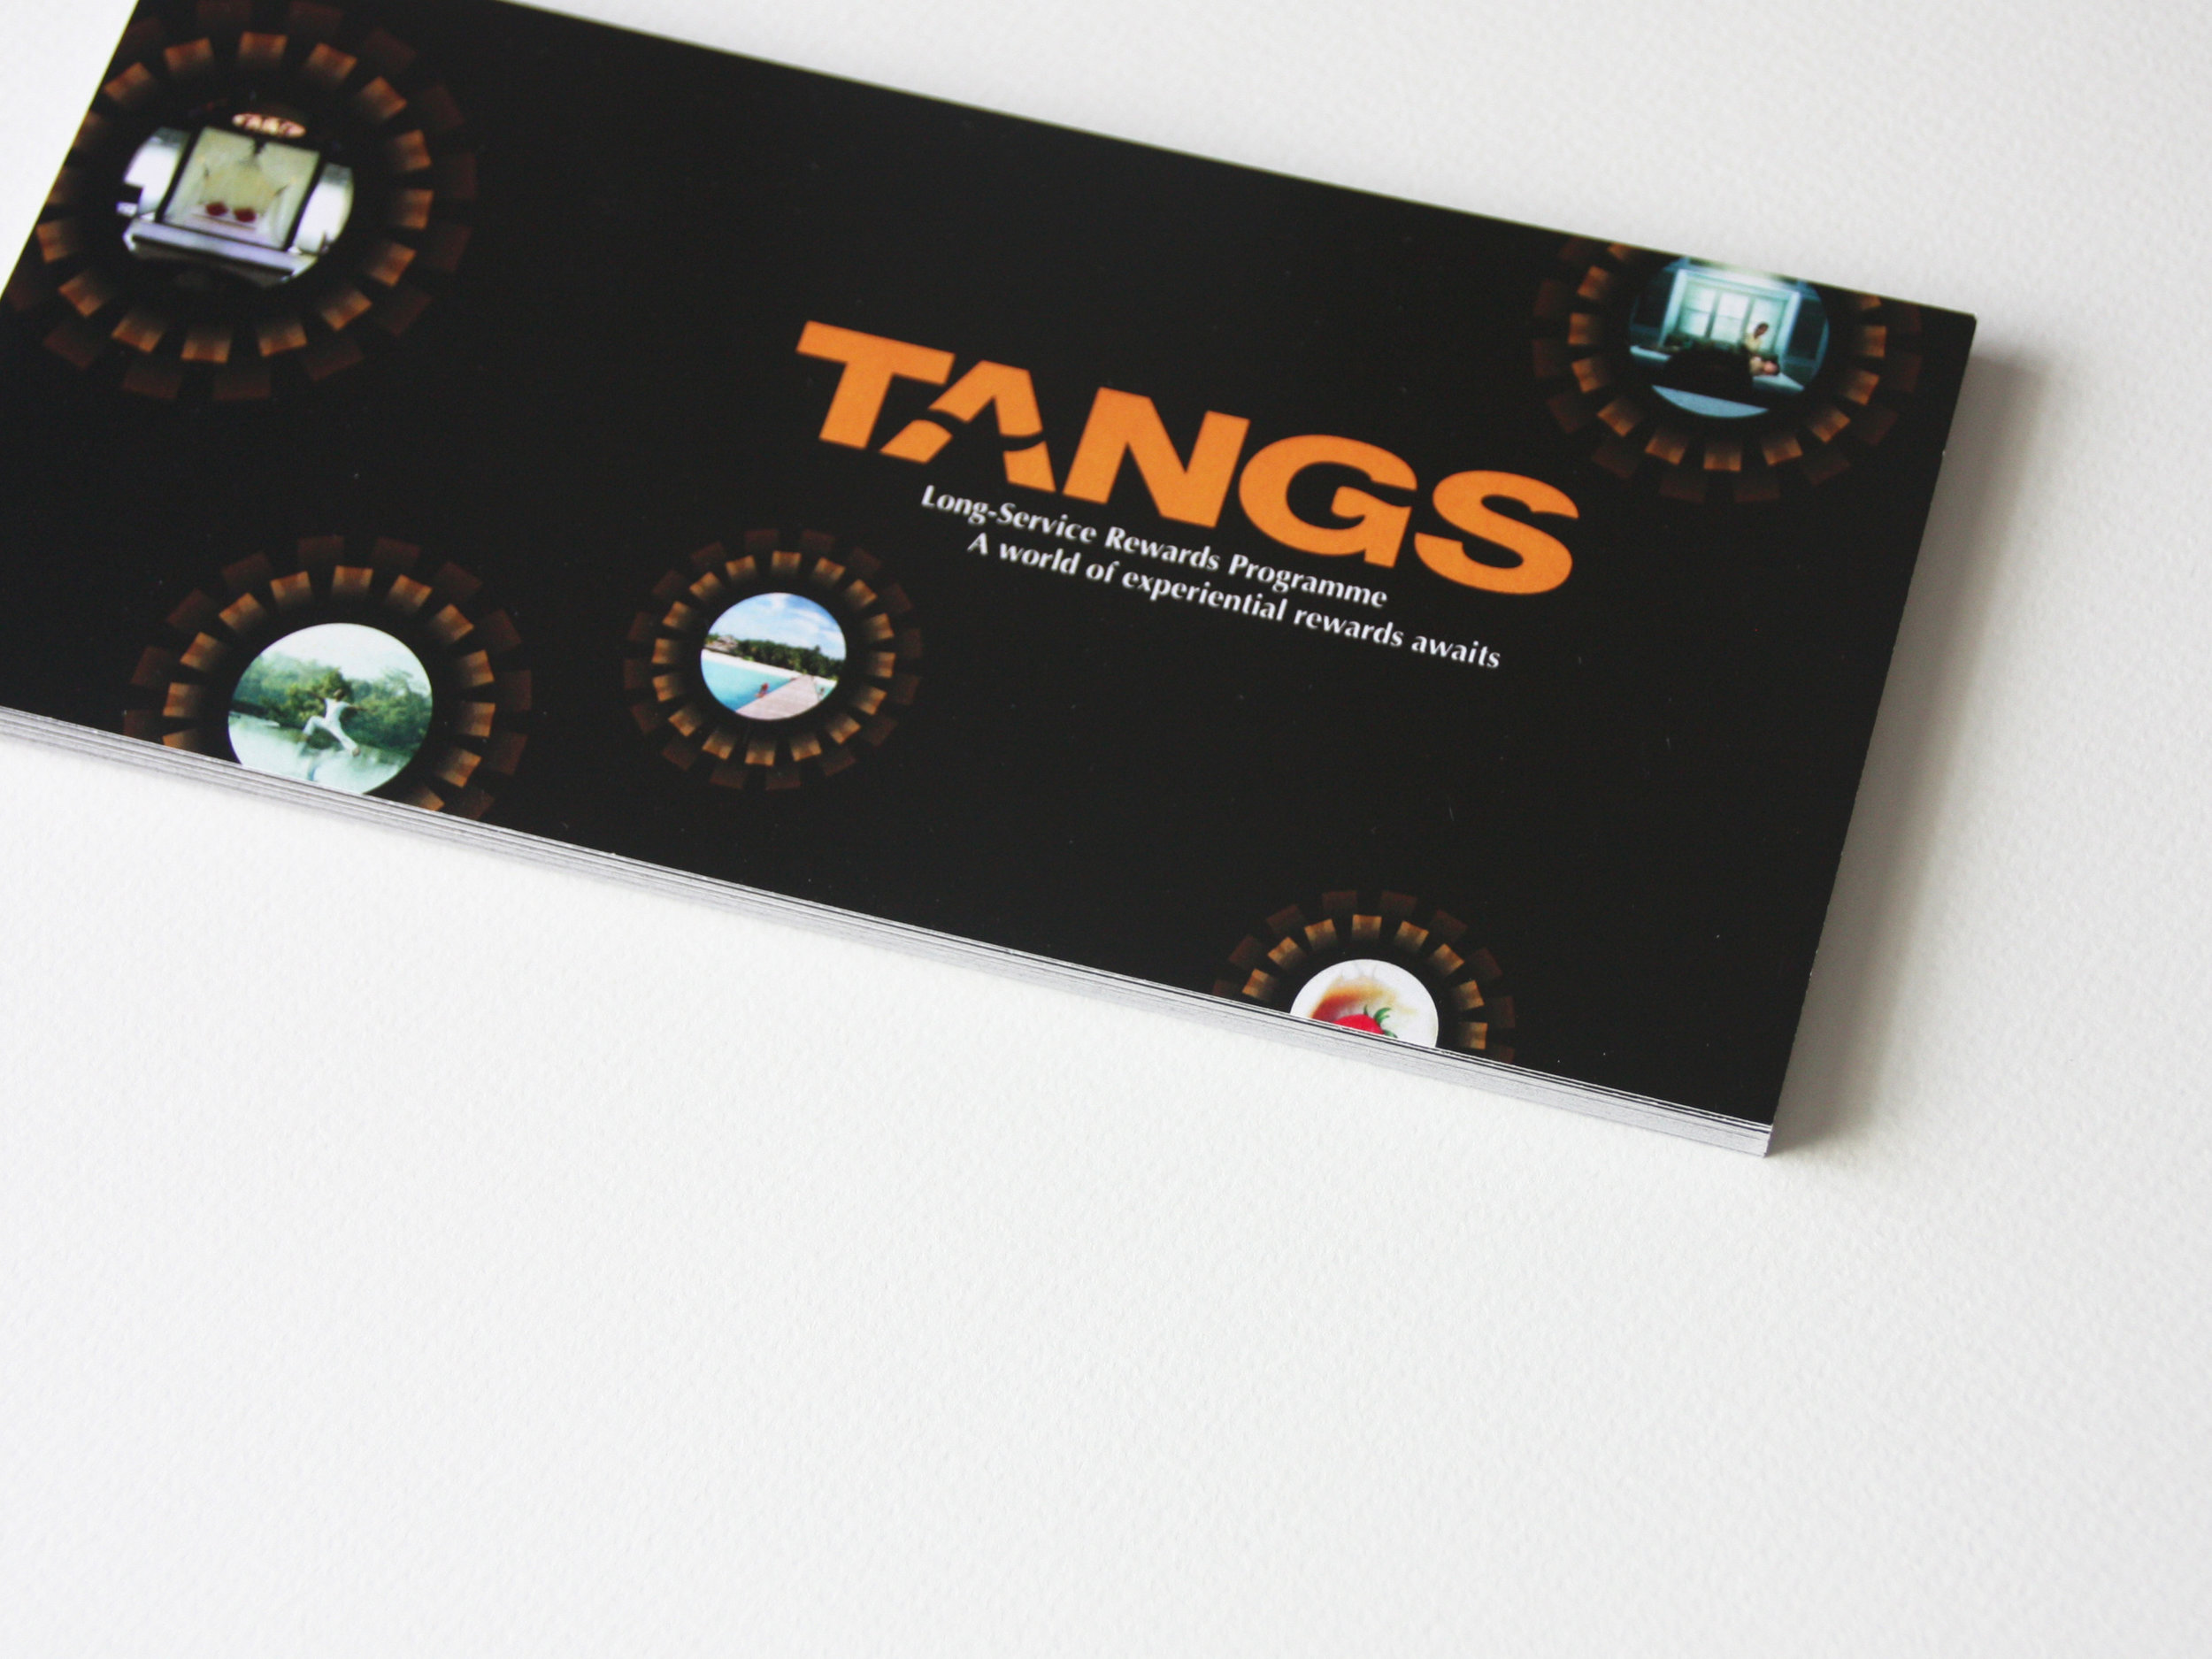 tangs-booklet1.jpg